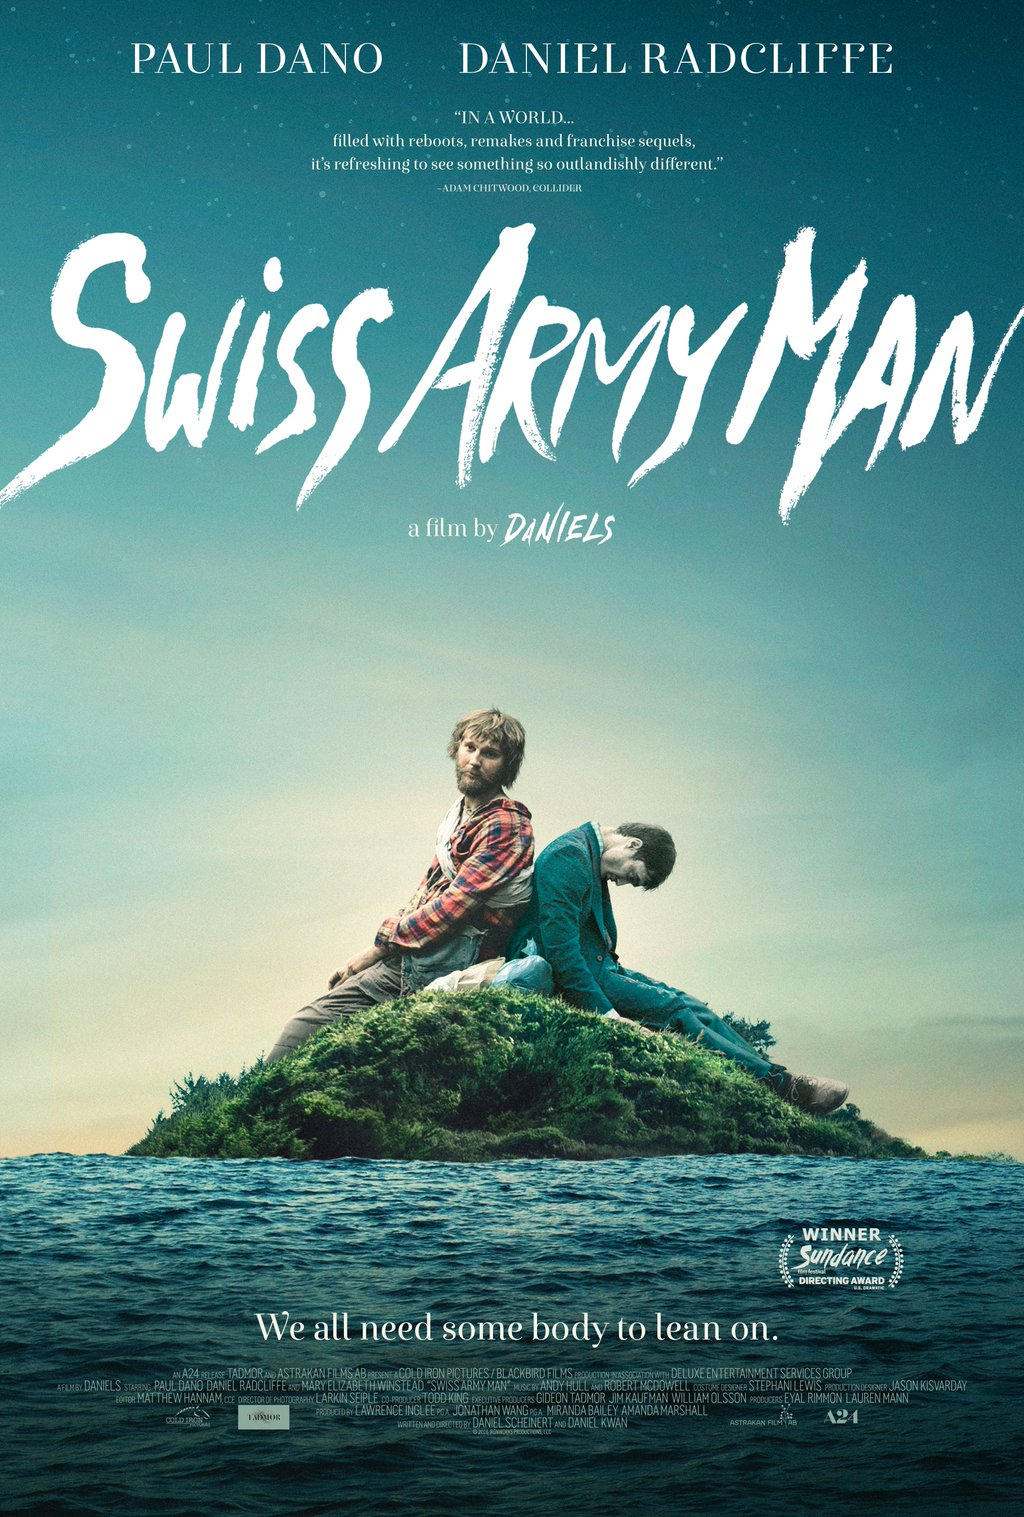 Swiss Army Man - I was laughing out loud! I felt so nervous and out of place, but it made me scream laugh. Daniel Radcliffe plays a corpse, and that line should tell you enough. It gave me hope that there are unique screenwriters out there. Please watch this if you've even had an inkling of a bad day.